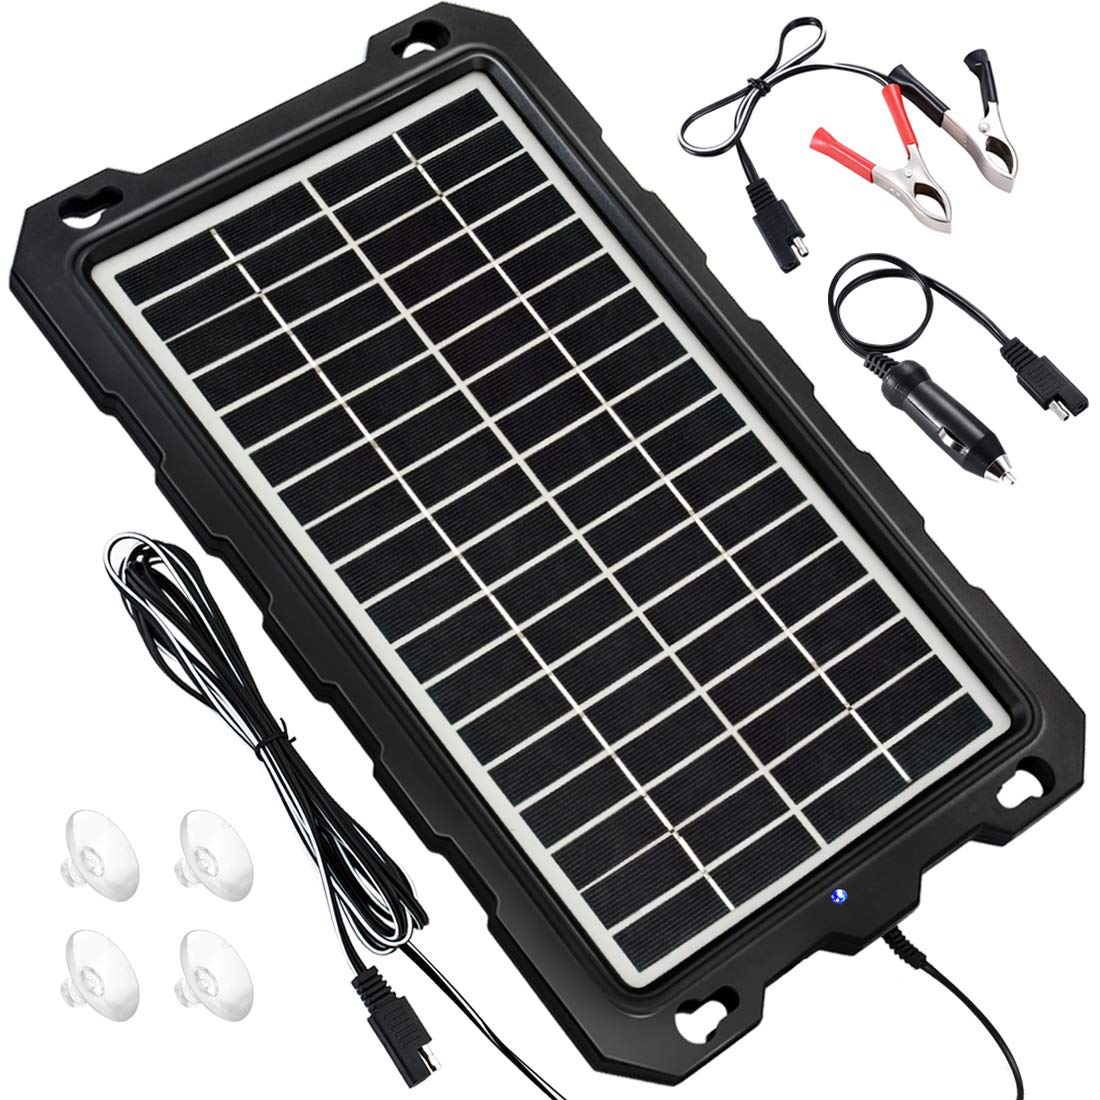 POWOXI Solar Battery Charger Car, 7.5W 12V Solar Trickle Charger for Car Battery, Portable and Waterproof Solar Battery Maintainer, High Conversion Polysilicon Solar Panel car Battery Charger for by POWOXI